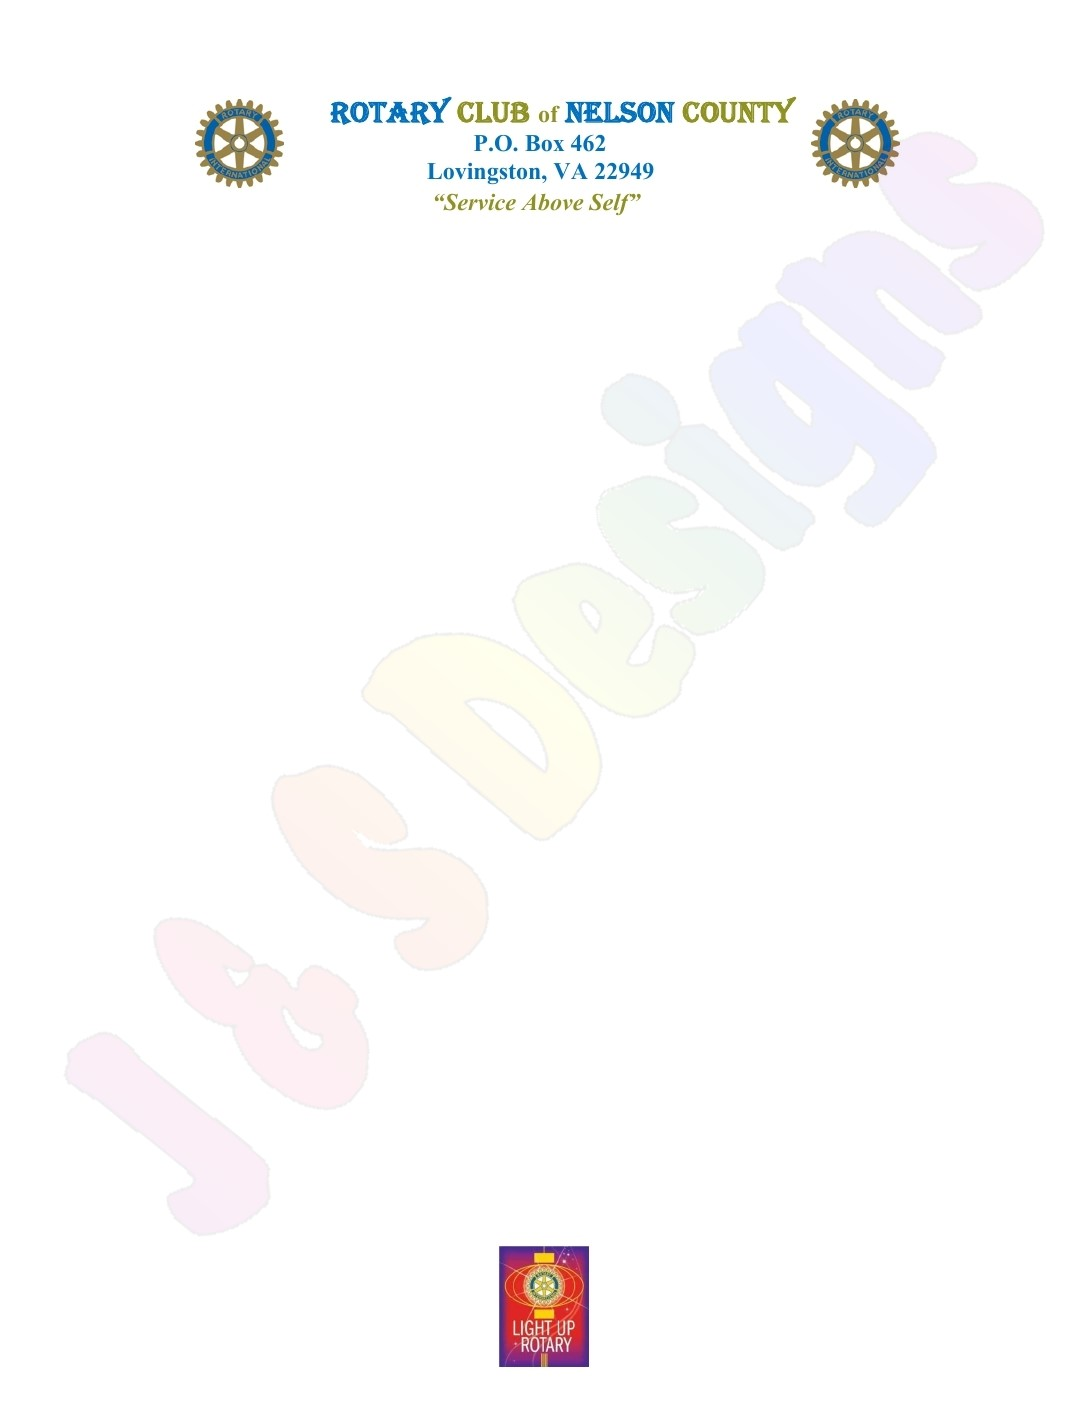 Nelson County Rotary Letterhead with emblem 2014 page 1 2